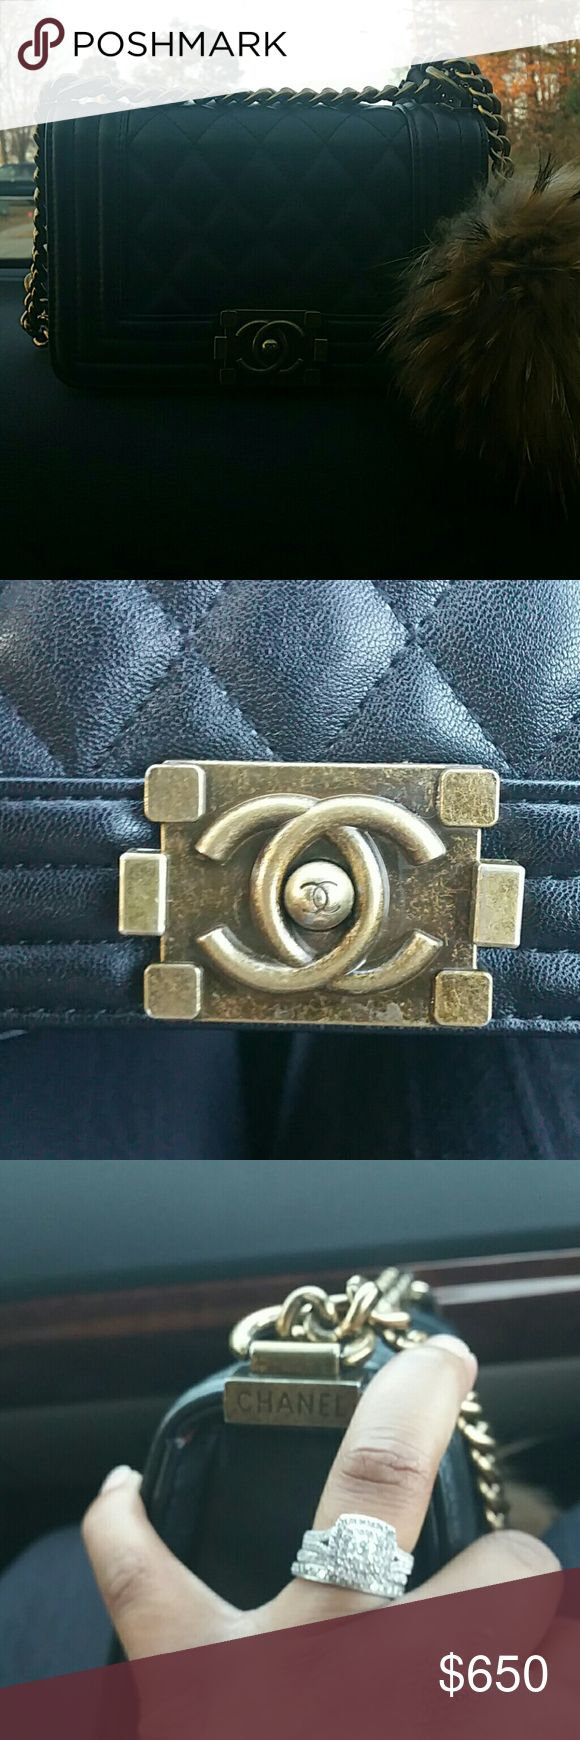 CHANEL Chanel price reflects that this purse is not authentic. Perfect Condition. Great Quality, comes with authenticity card. FUR BALL NOT INCLUDED CHANEL Bags Mini Bags